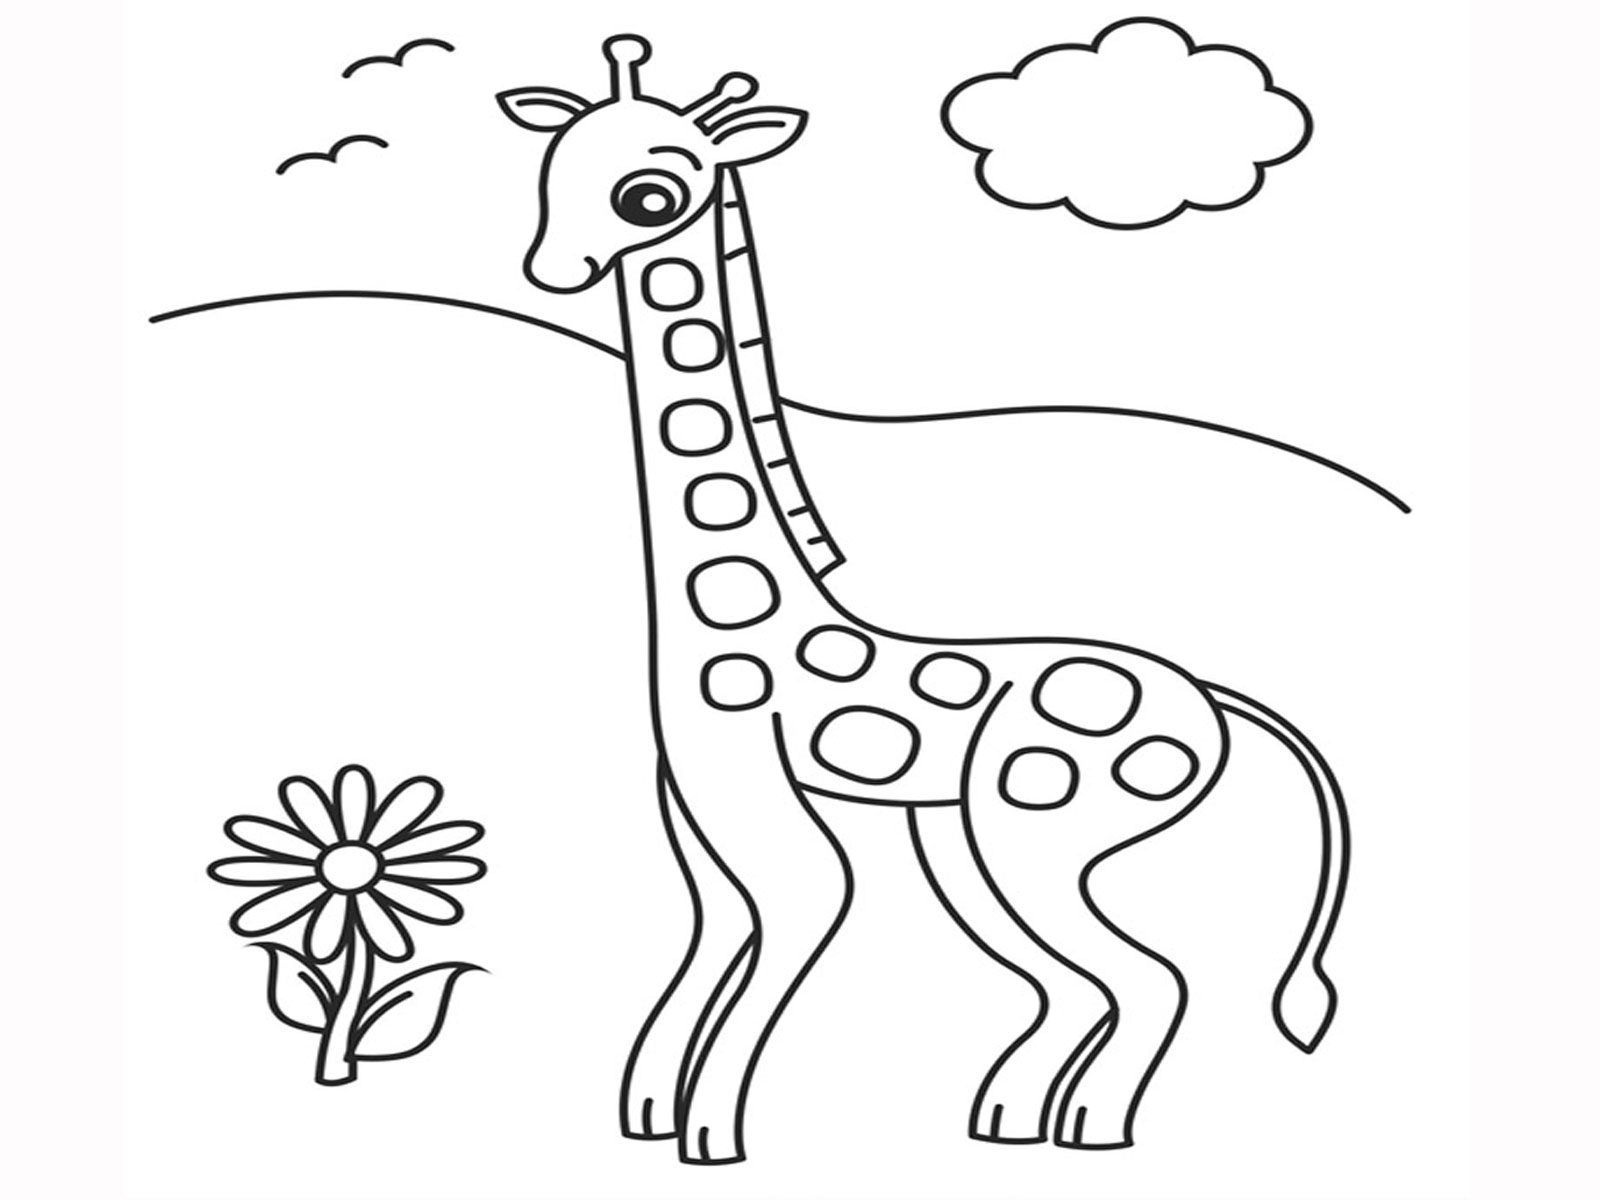 1600x1200 Giraffe Descprition And Facts